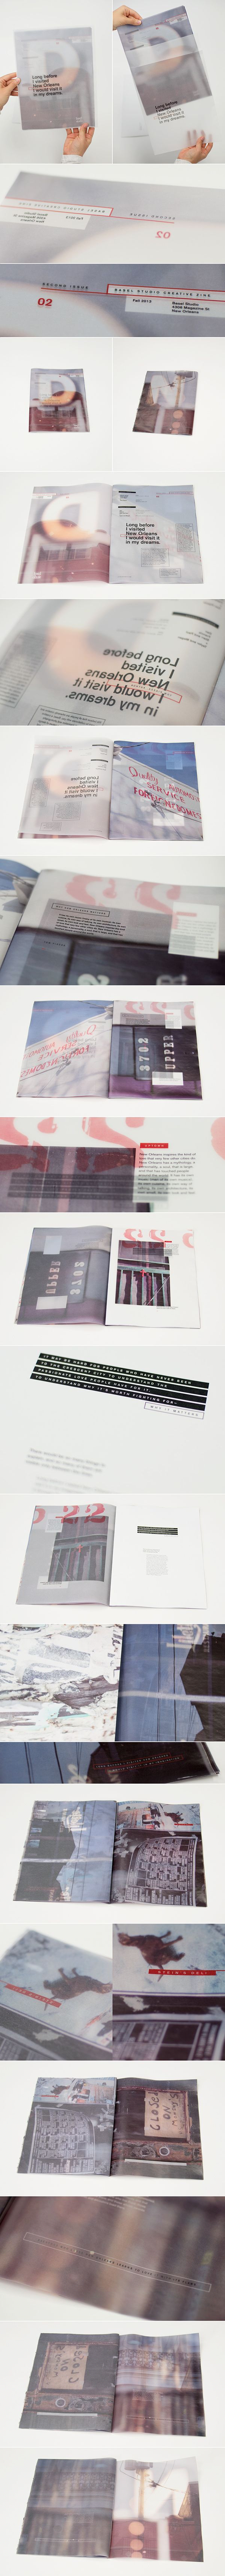 Basel Issue 02 on Behance